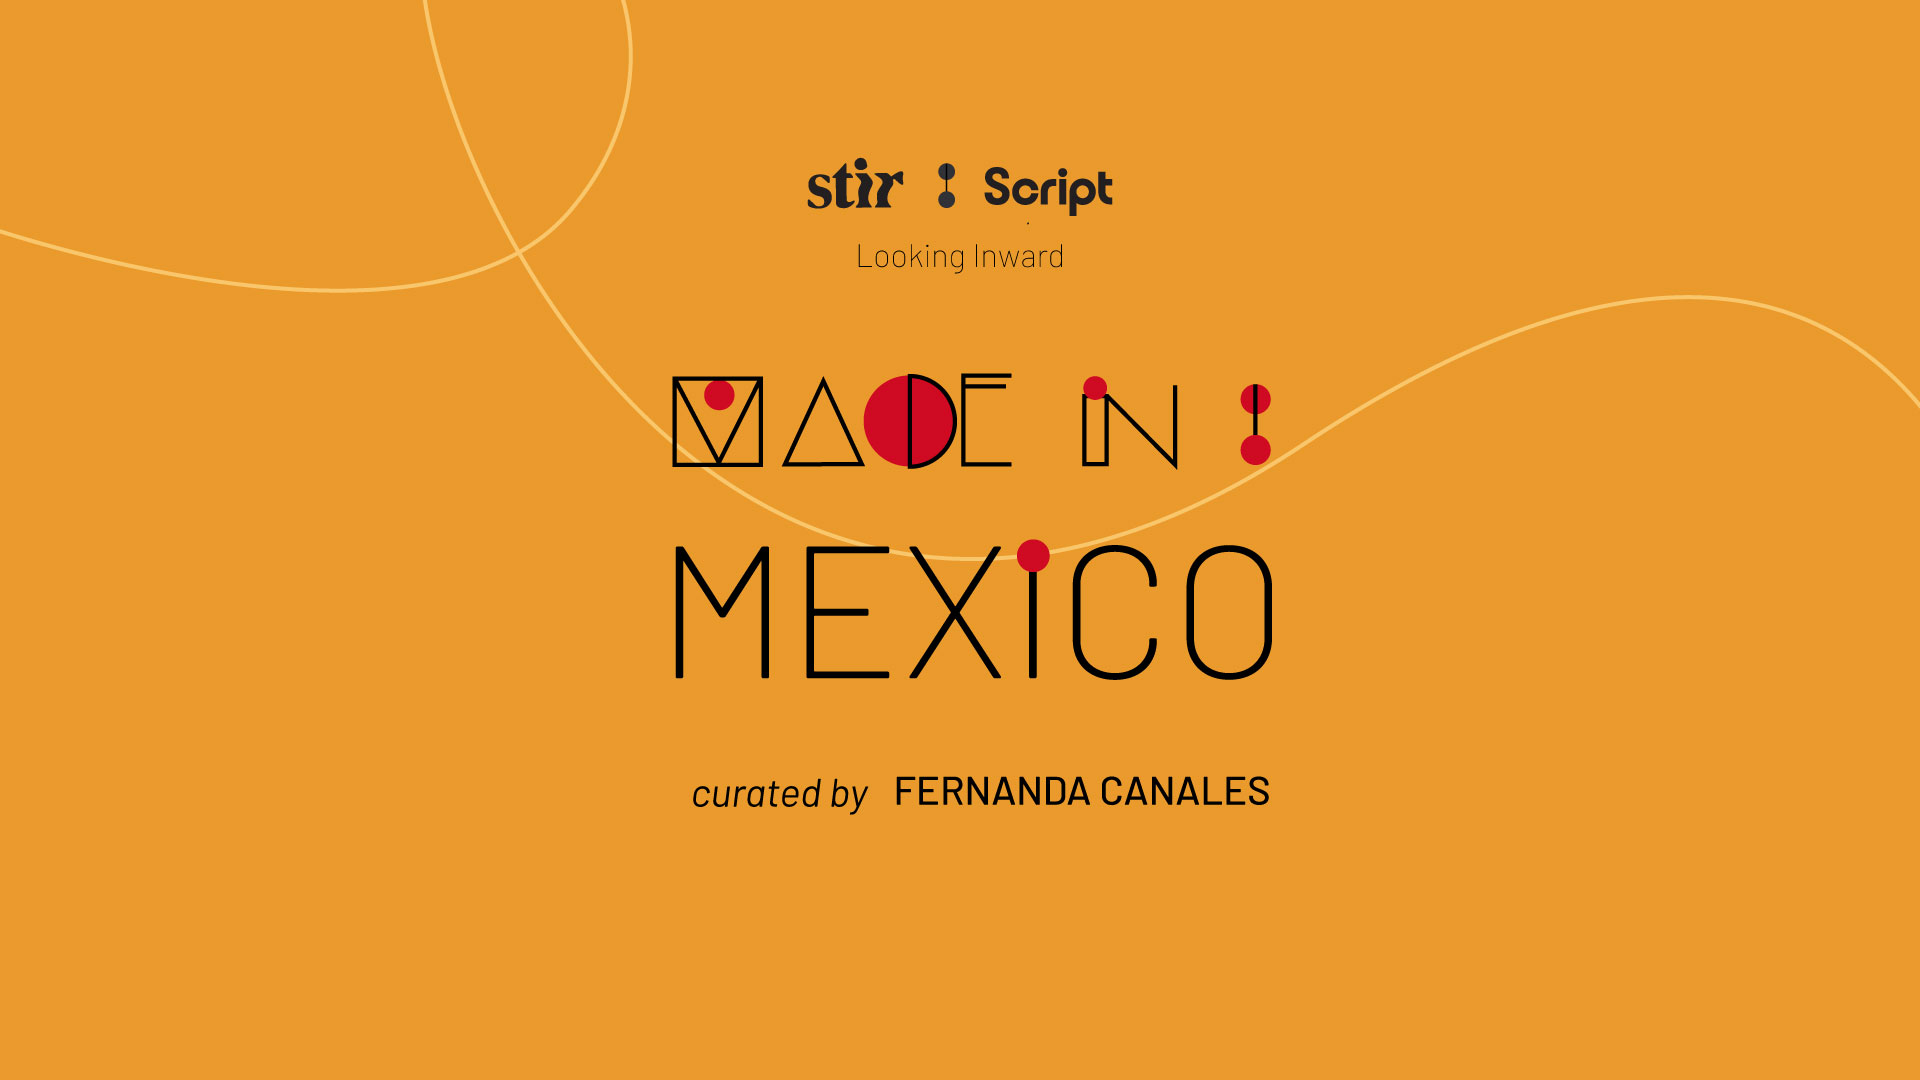 Made in Mexico: Curated by Fernanda Canales